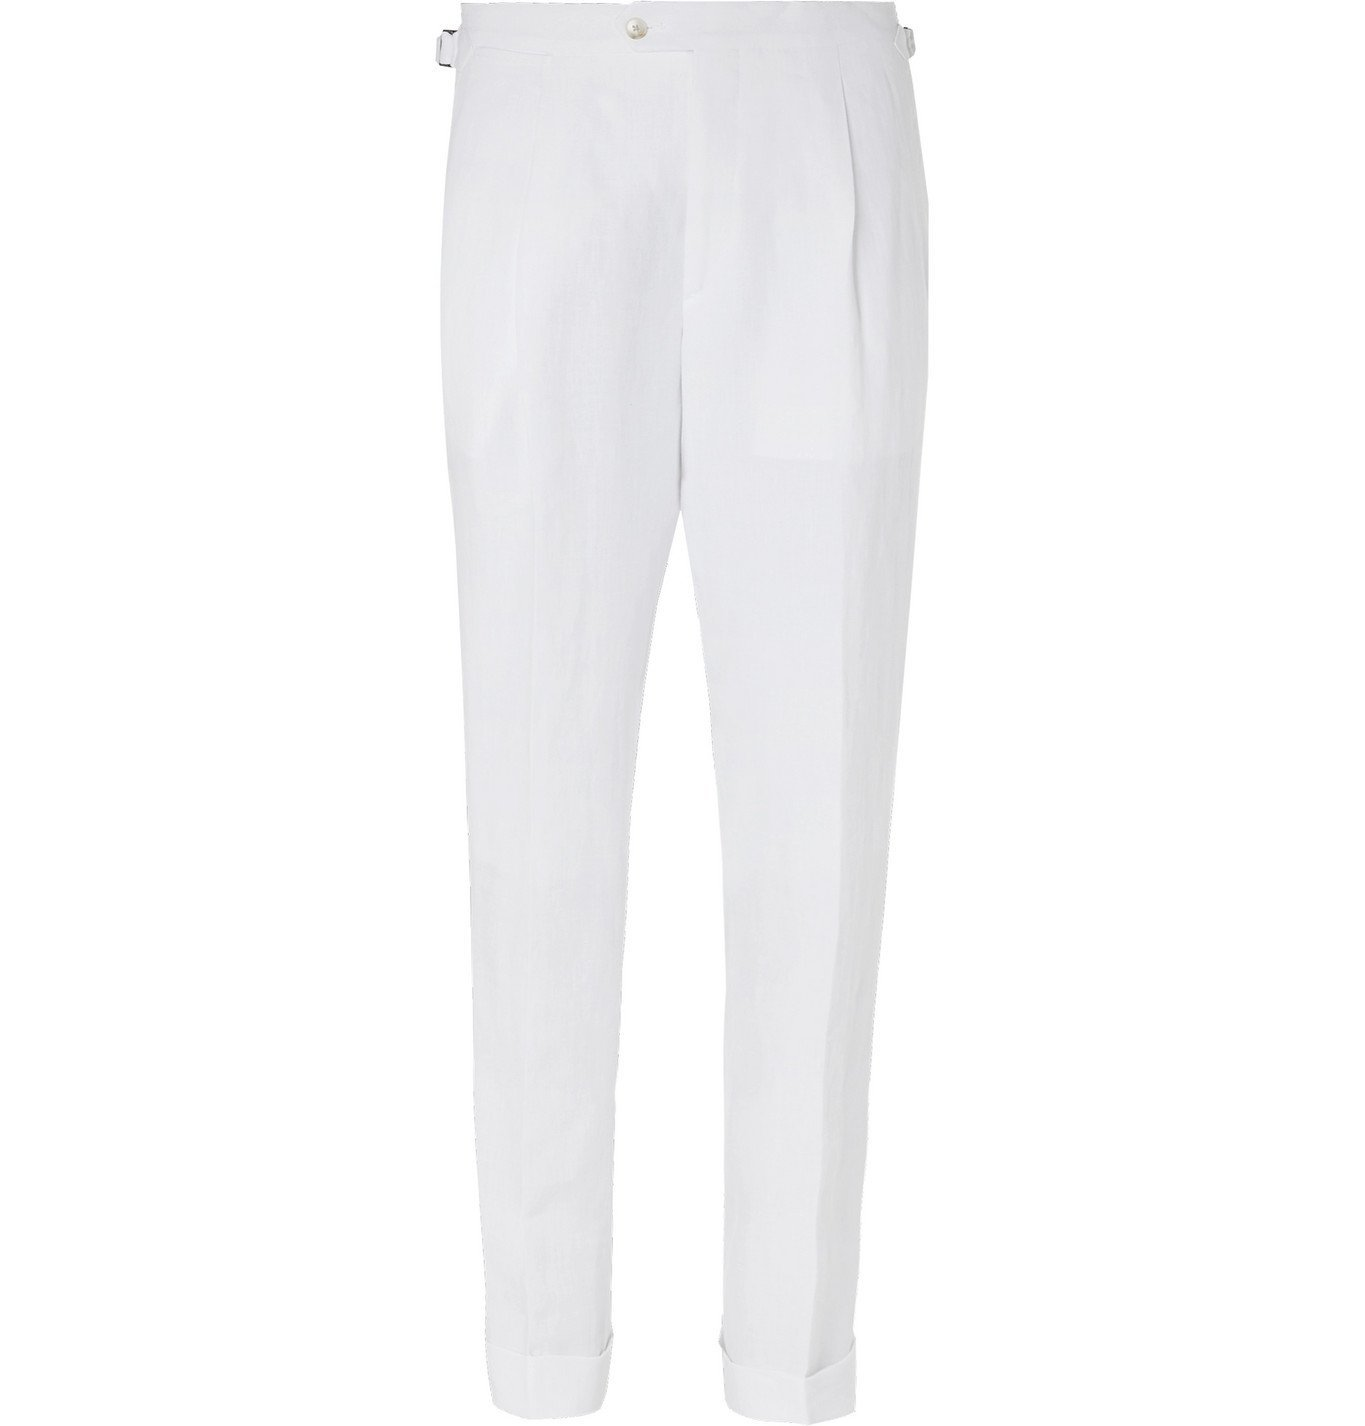 Saman Amel - Tapered Pleated Linen Trousers - White